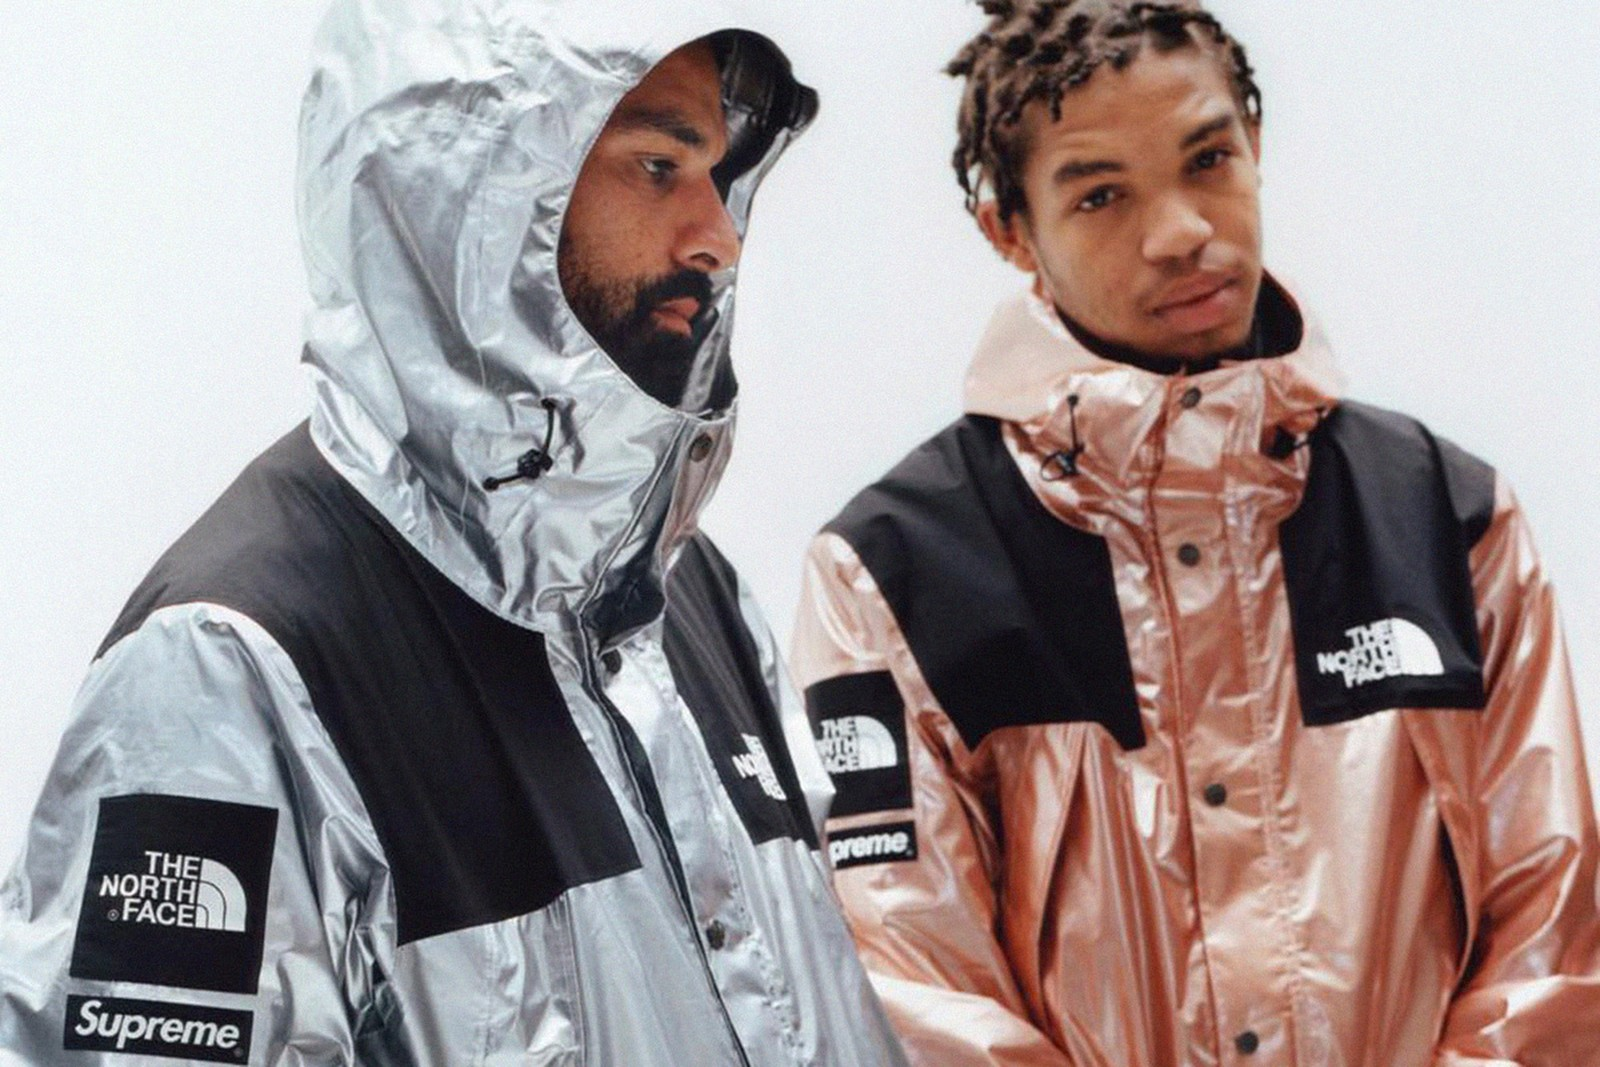 The Supreme X North Face Collab